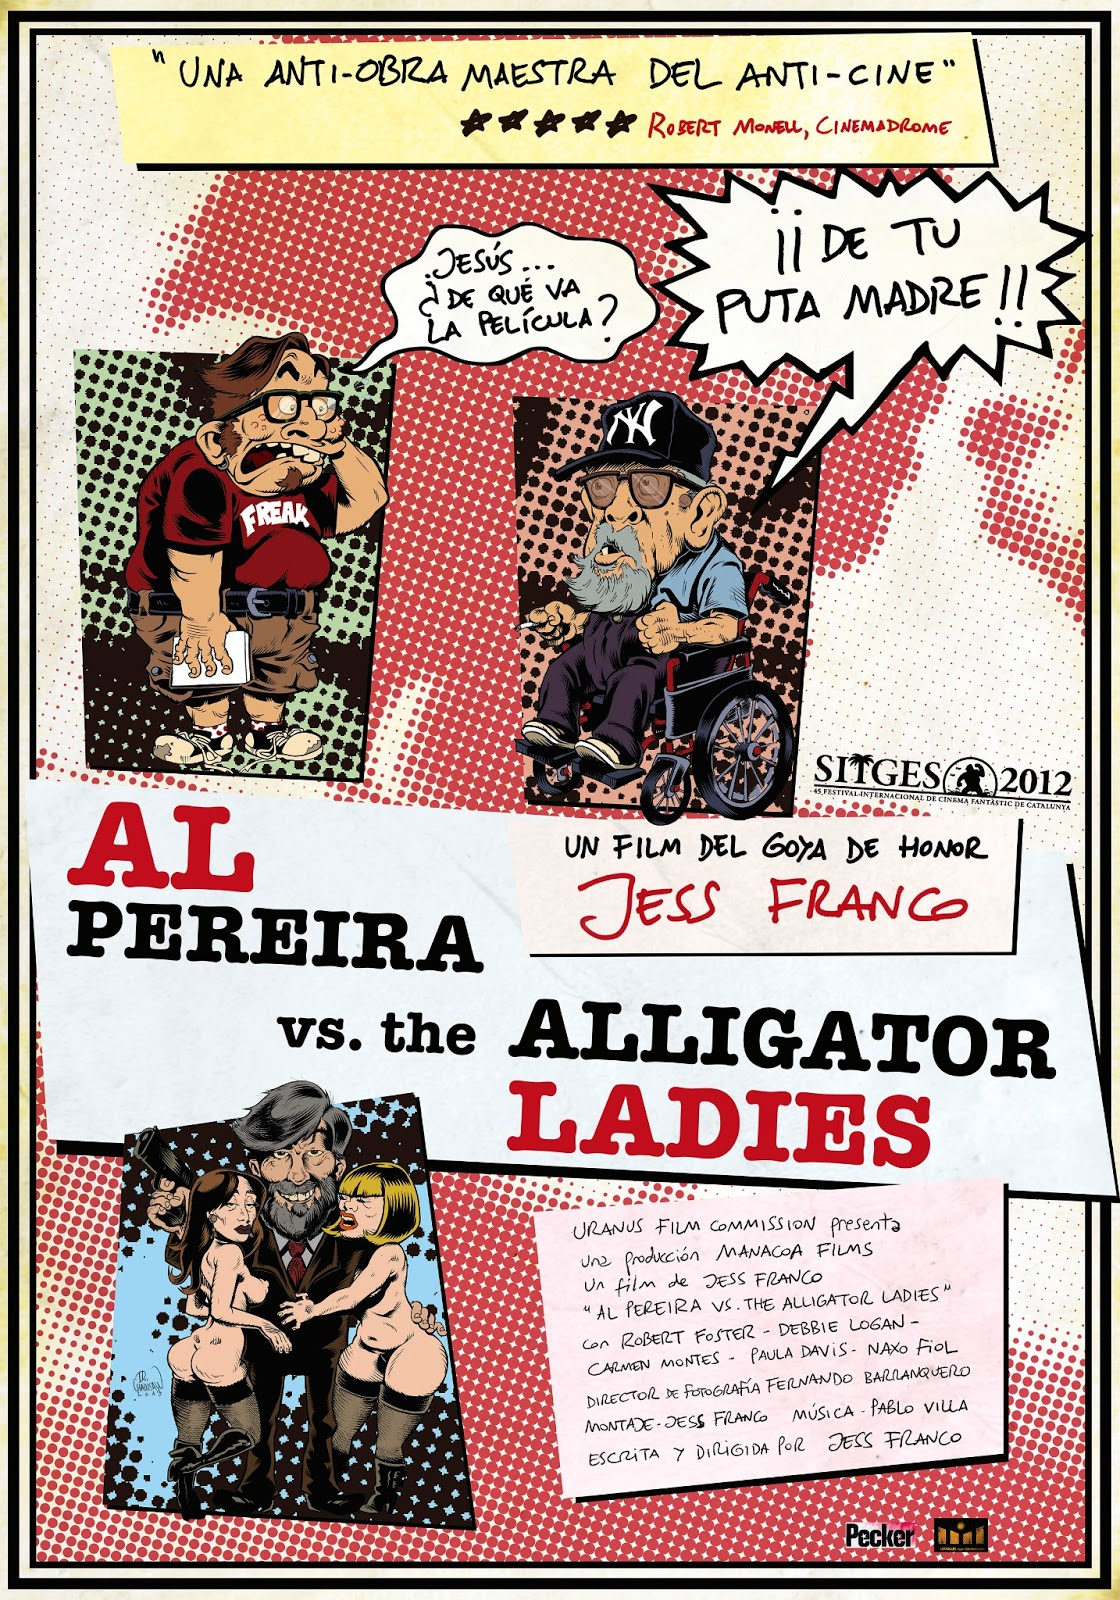 http://1.bp.blogspot.com/-FQIkRjek9Ow/UVHry4Nv3GI/AAAAAAAAIS0/ub7mrEsoOL0/s1600/al+pereira+vs+the+alligator+ladies+POSTER+A4.jpg